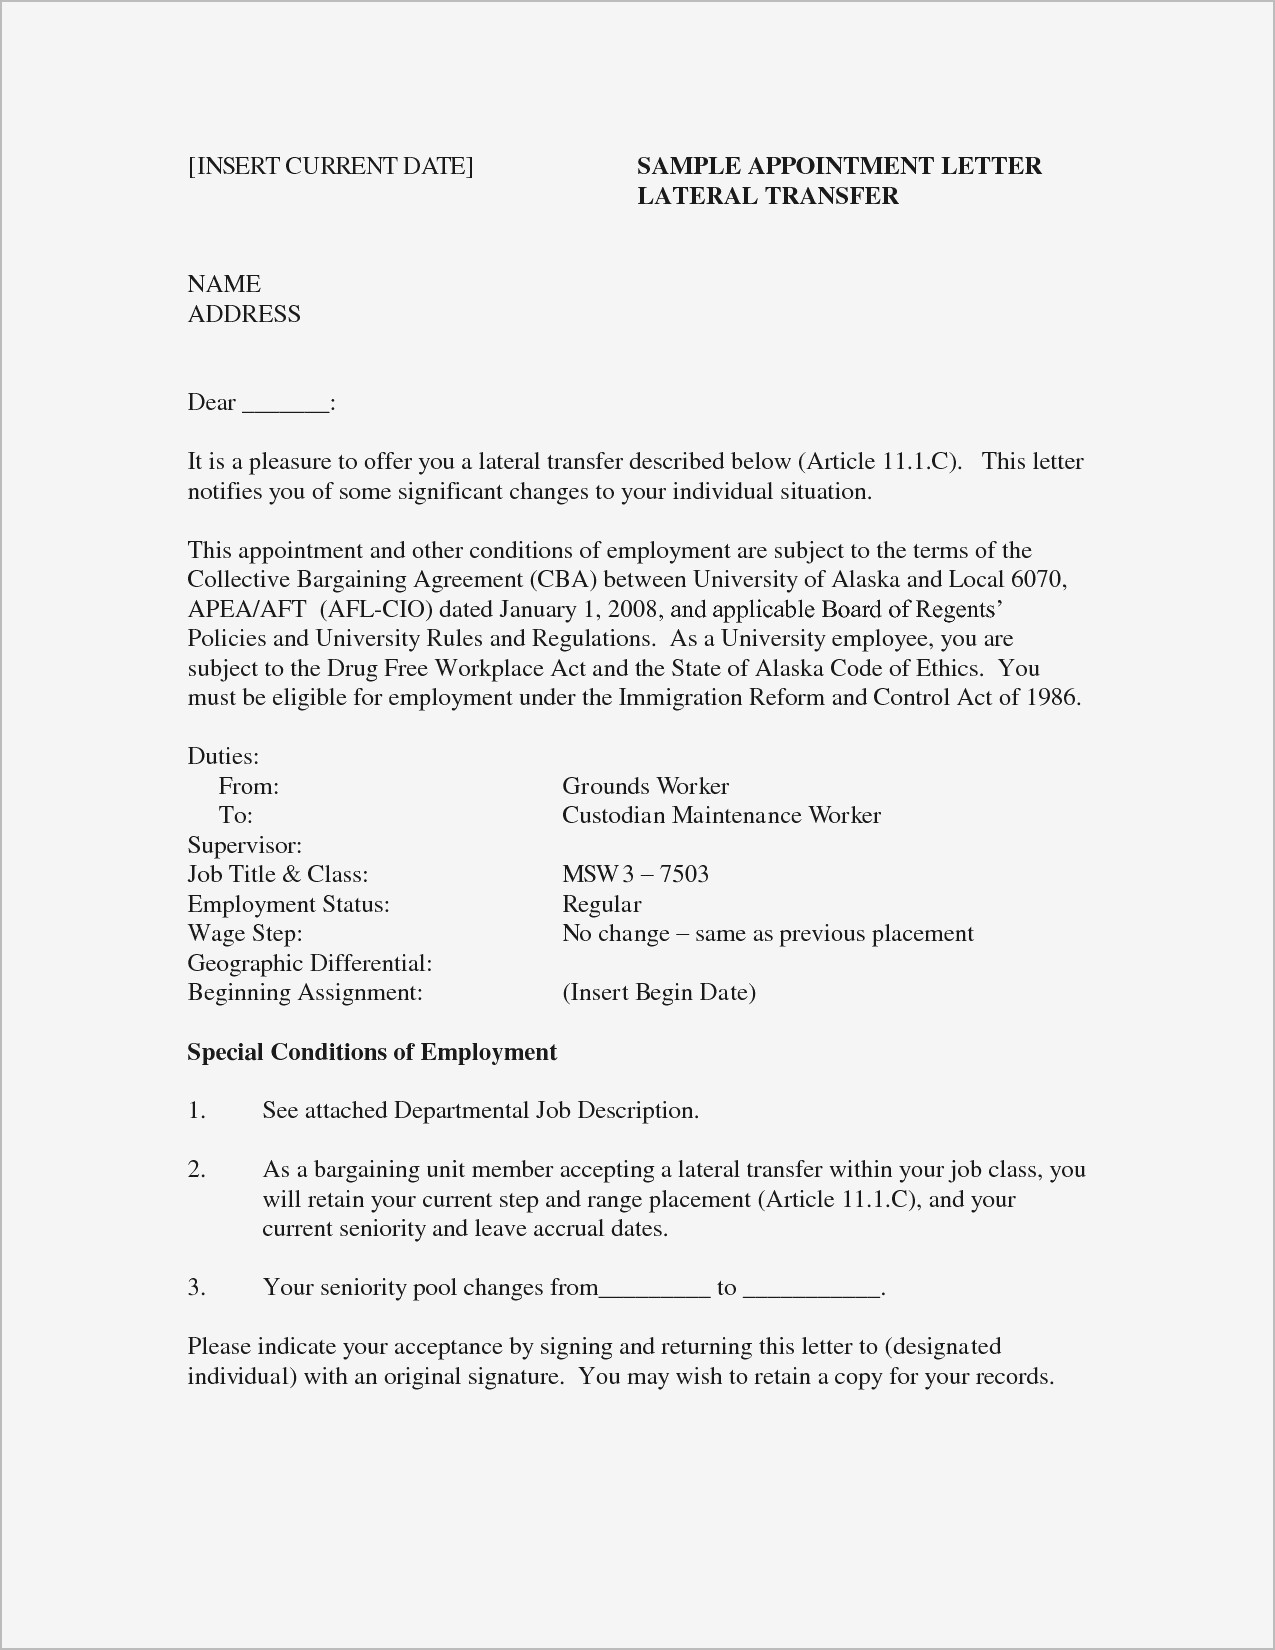 Receipt Letter Template - Professional Cover Letter Example Pdf format